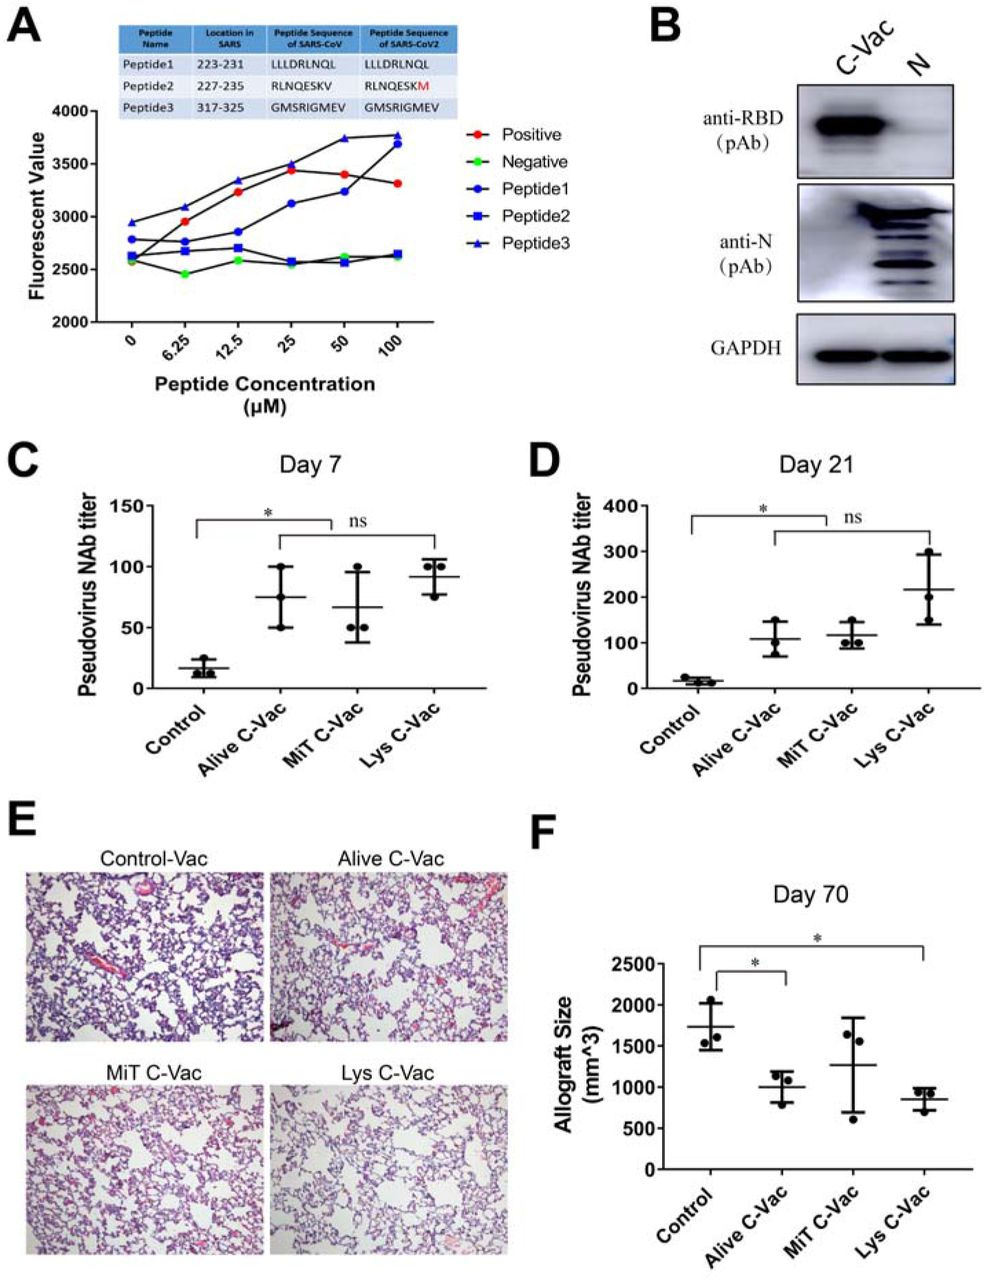 The immunogenicity, efficacy and safety of C-Vac for SARS-CoV-2 infection. (A) Flow cytometry-based detection of MHC(HLA-A2)-peptide complex binding affinity in T2 cells. (B) The expression of antigens in 293T-based C-Vac is confirmed by Western Blot. N, 293T cells transfected with the plasmid expressing a full length N gene. (C D) Pseudovirus neutralization titers of hamster serum at day 7 after the first immunization and day 21 (boosted at day 14) after vaccination with 293T-based C-Vac, MiT C-Vac: Mitomycin C-treated C-Vac, Lys C-Vac: Lysed C-Vac. (E) Histological characteristics of hamster lung at day 7 after the first vaccination. Original magnification 200× (F) Allograft volume of transformed fibroblasts expressing RBD-truncated N protein in the Syrian hamsters immunized with different regime. 5×10 6 BHK21 cells expressing C-Vac antigen (RBD-Ntap) were subcutaneously injected into immunized hamsters for challenge at day 45 after boost, and the volume of allografts were measured at 14 days after inoculation of the BHK21 cells expressing RBD-Ntap into the immunized hamsters.